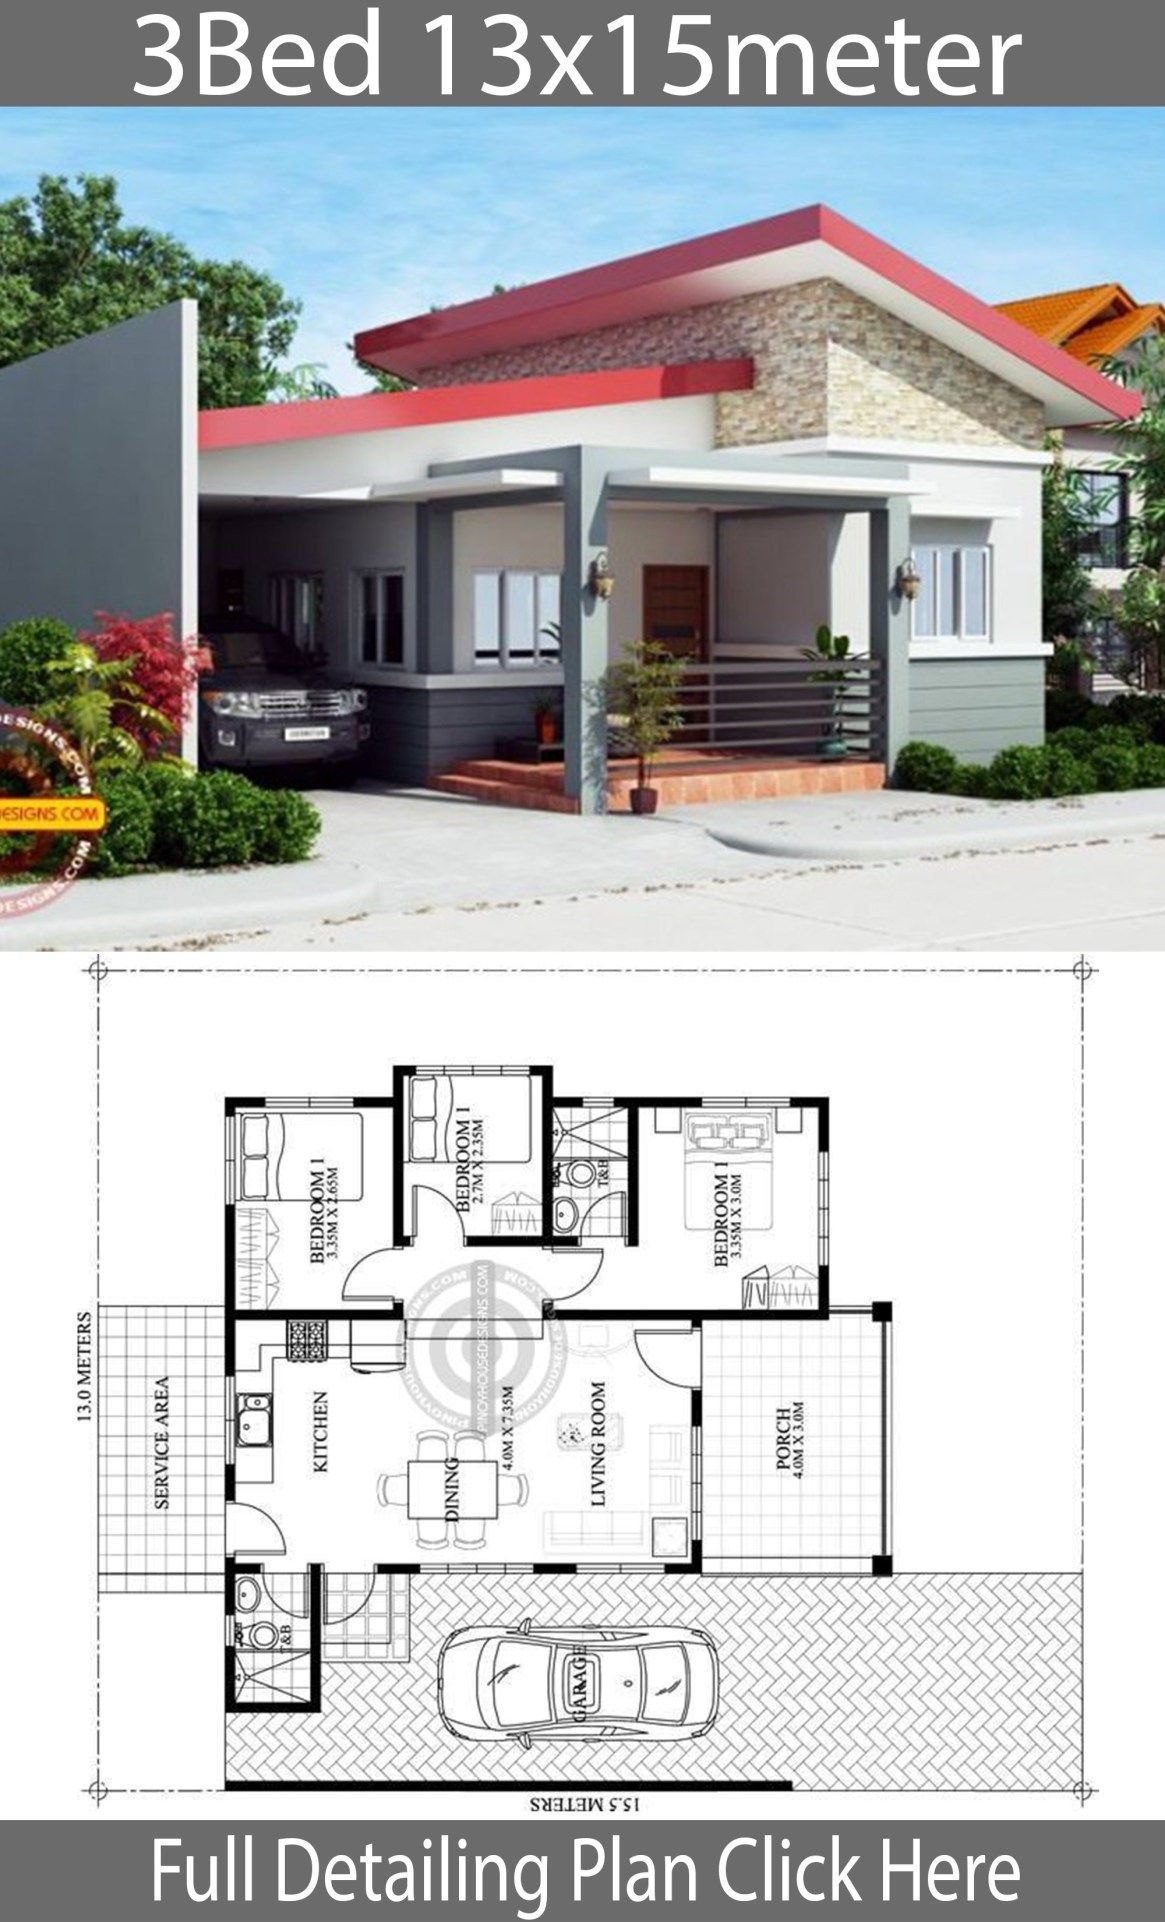 Home Design Plan 13x15m With 3 Bedrooms Home Design With Plansearch Affordable House Plans House Plan Gallery House Construction Plan